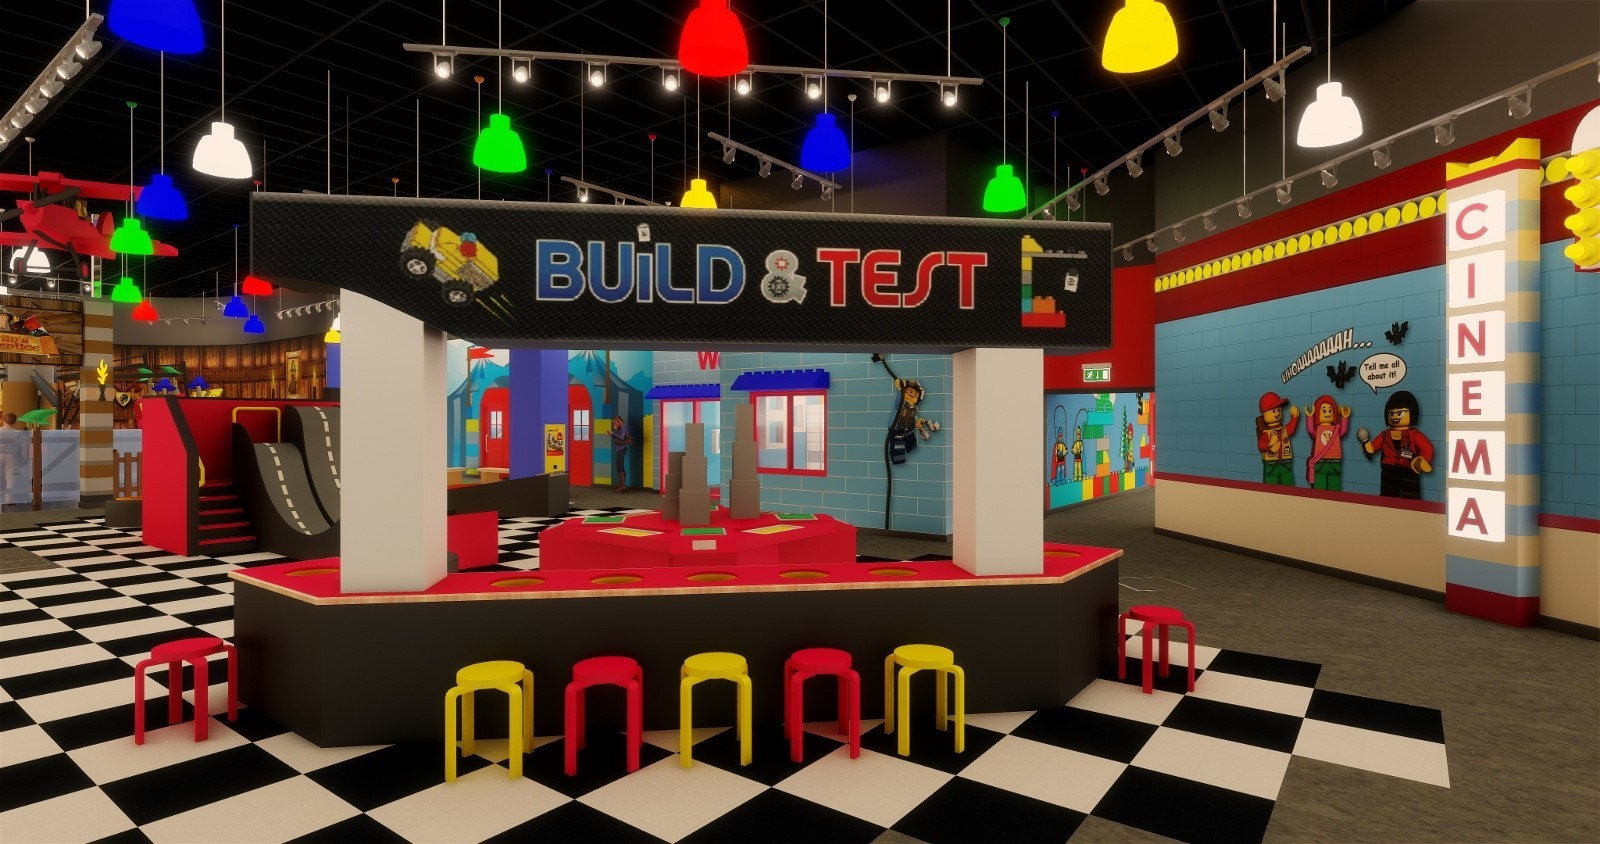 LEGOLAND Discovery Centre Birmingham will officially open its doors in summer 2018